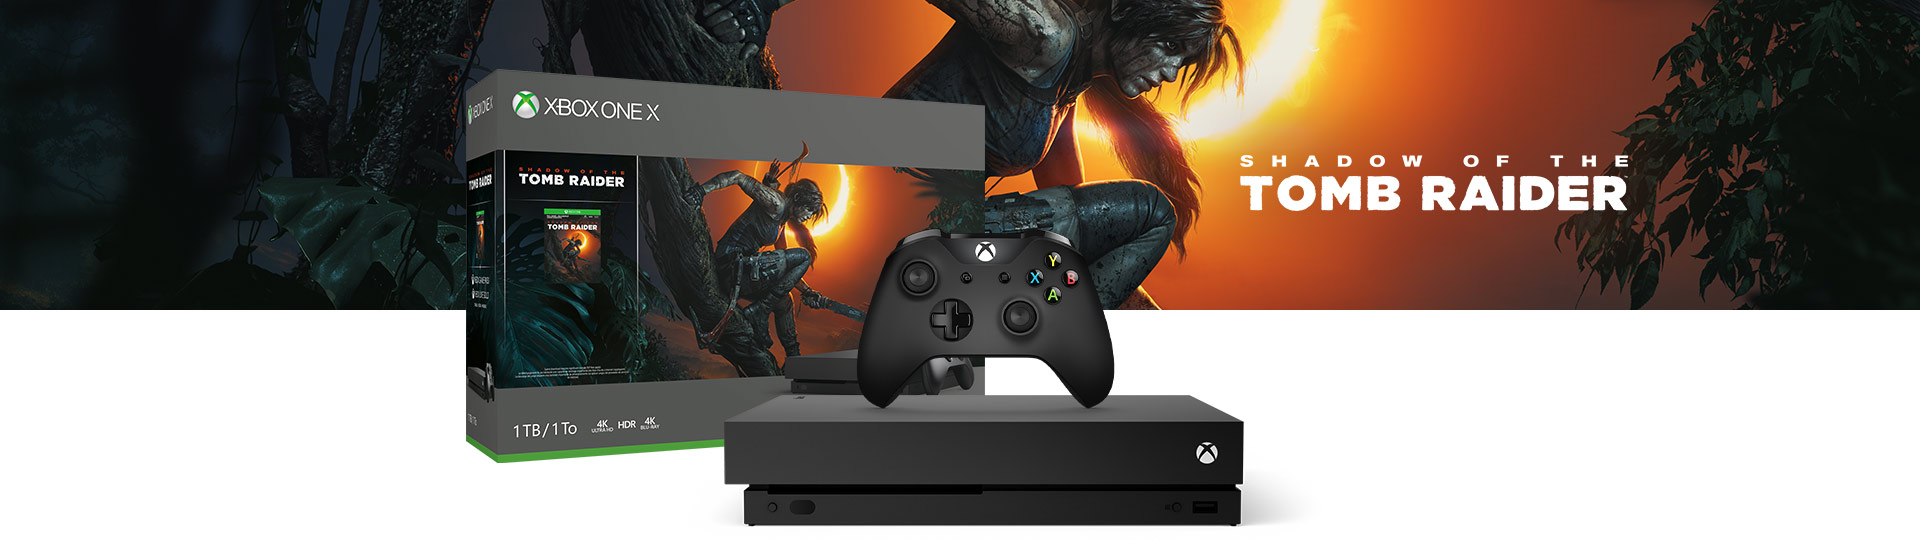 Xbox One X et la manette à côté de la boîte du produit Xbox One X Shadow of the Tomb Raider 1 téraoctet